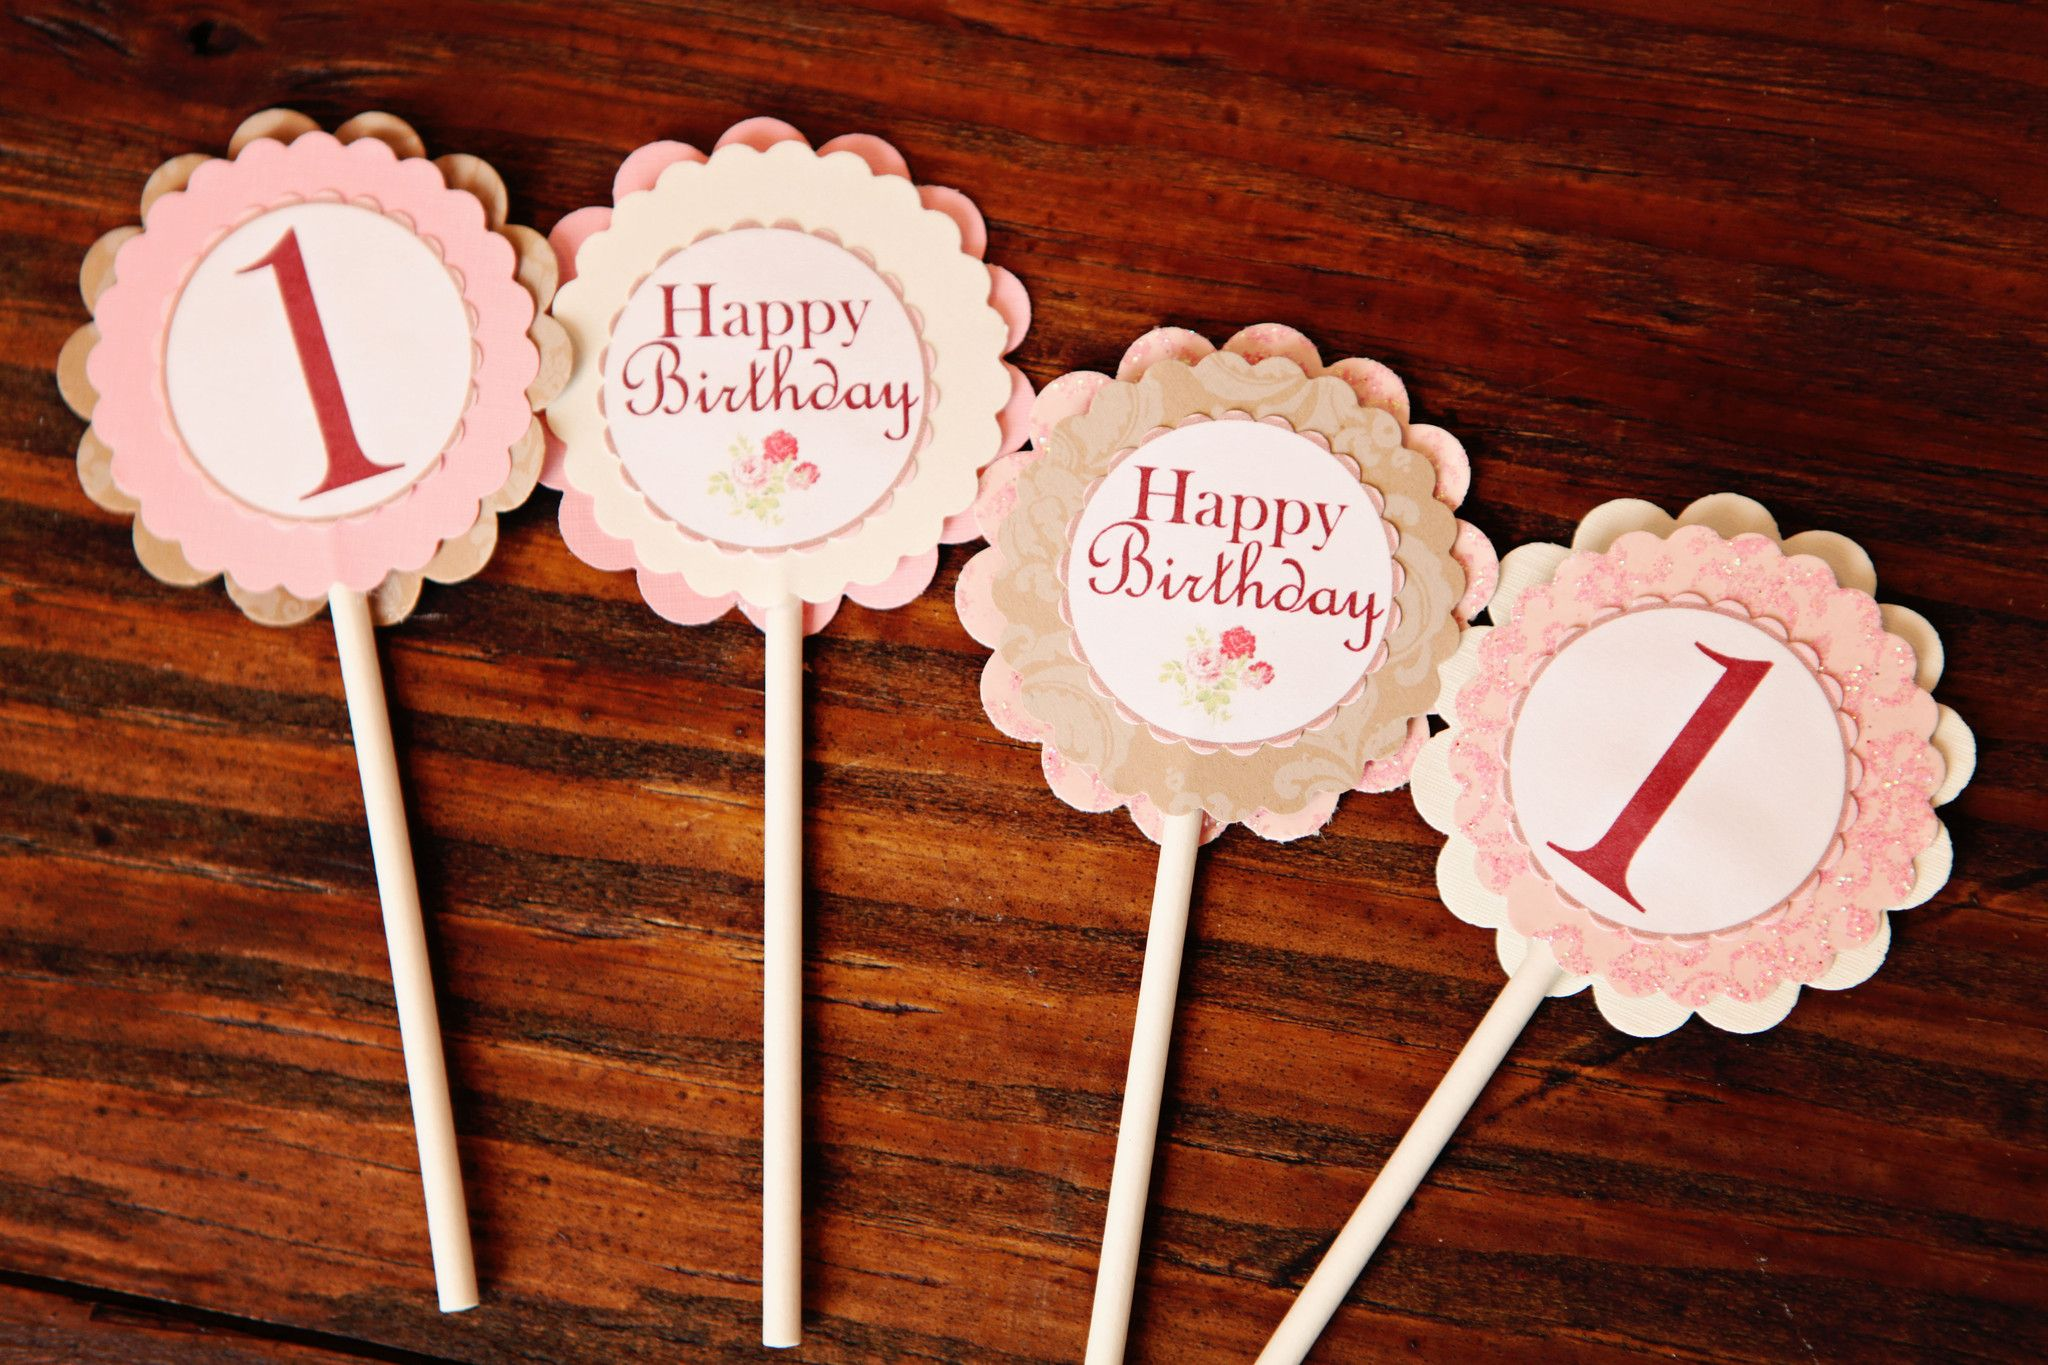 Southern Charm Cupcake Toppers Vintage Birthday Rustic Girl Decorations Cake